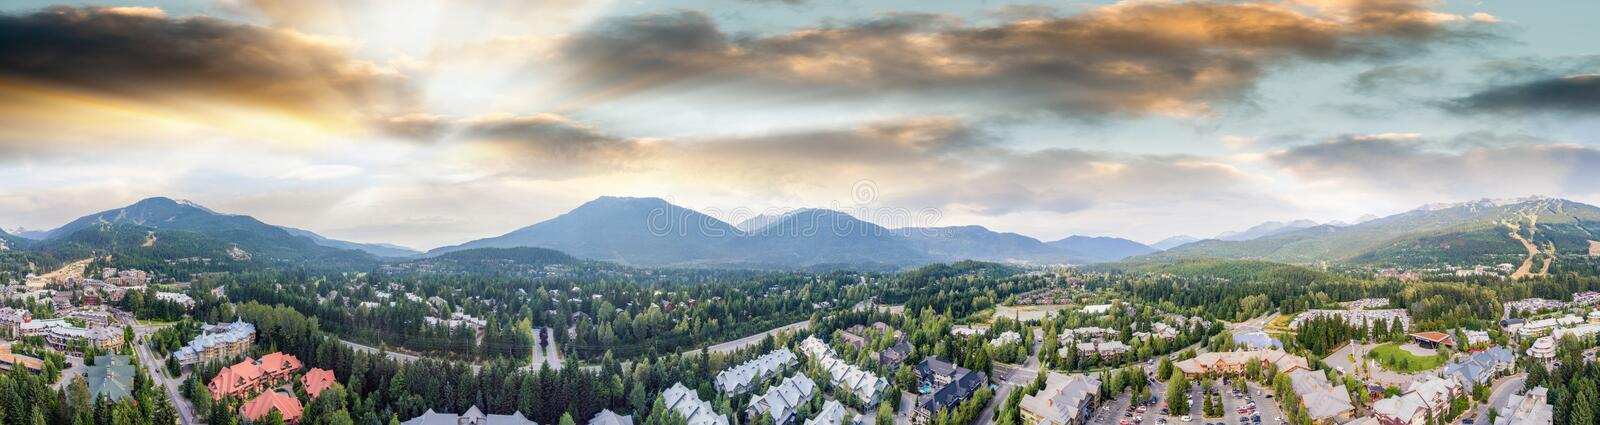 Panoramic aerial view of Whistler skyline and surrounding mountain scenario in summer royalty free stock image